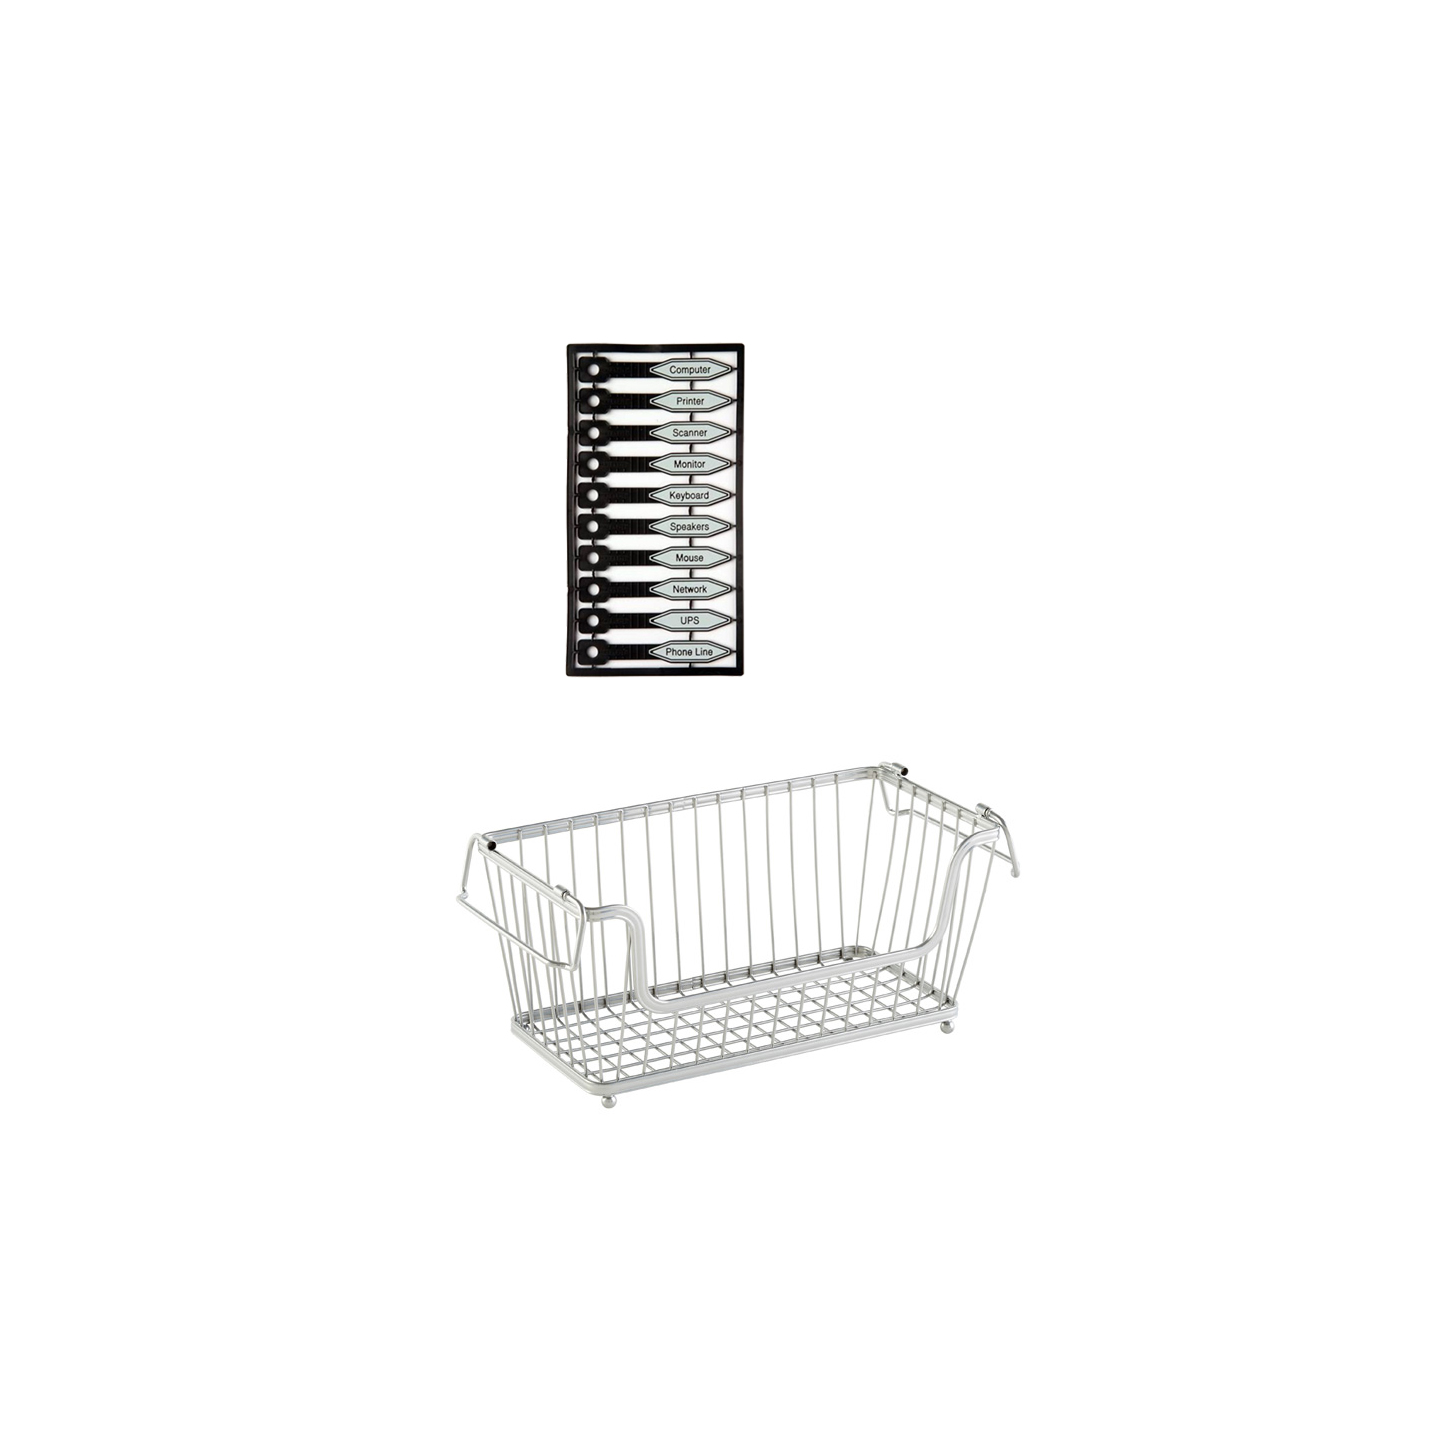 Small Silver York Open Stack Basket and Kableflags